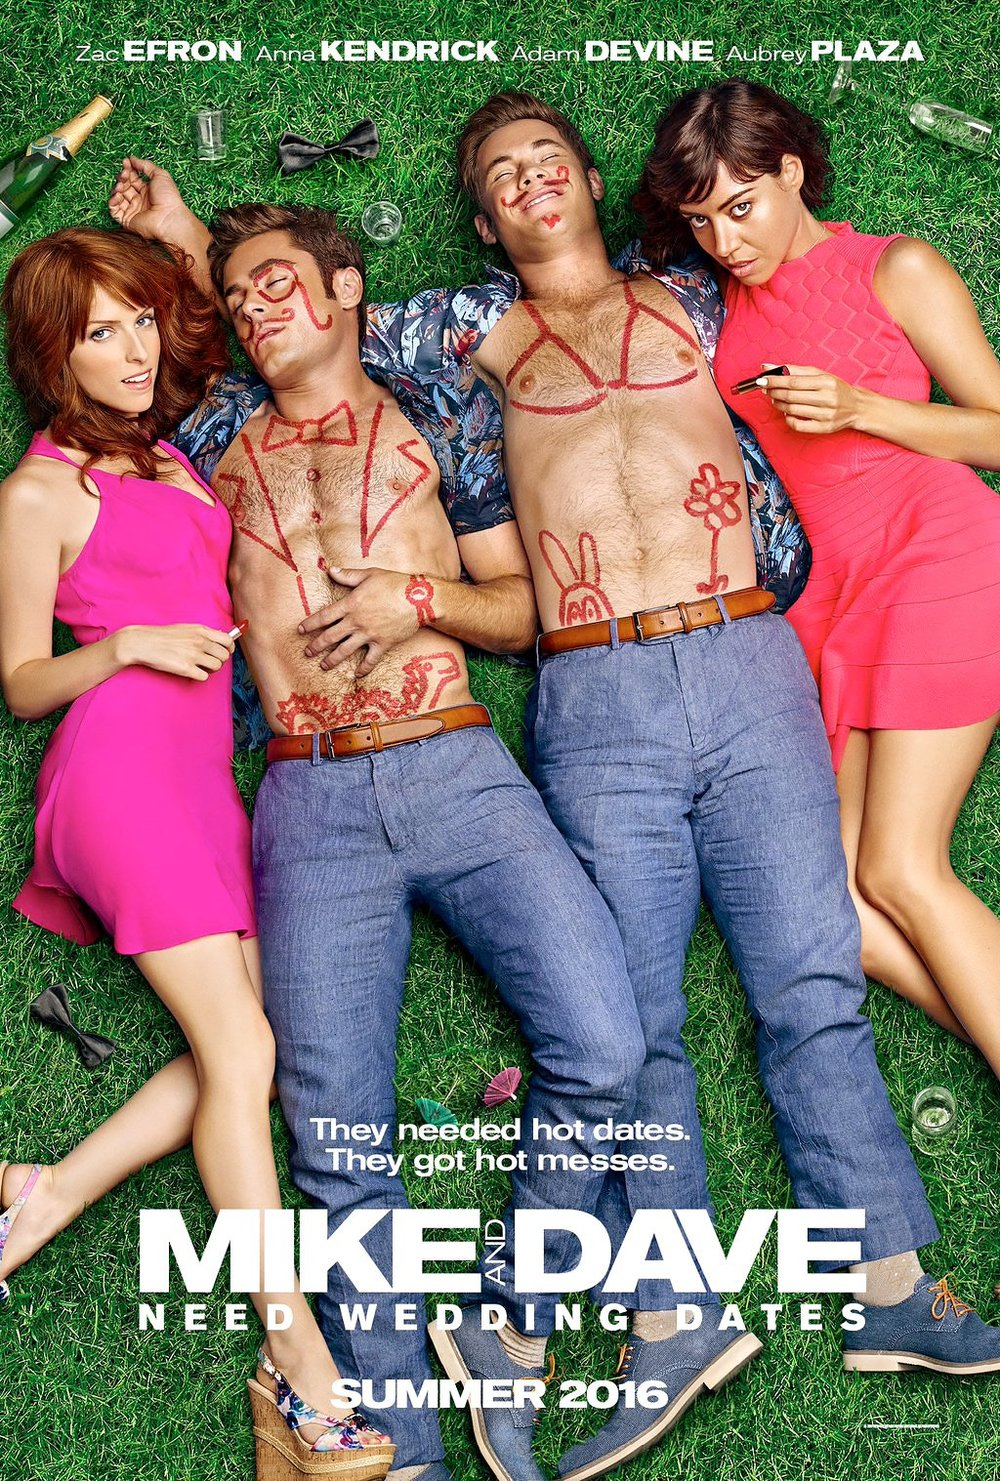 mike-and-dave-need-wedding-dates-movie-poster.jpg